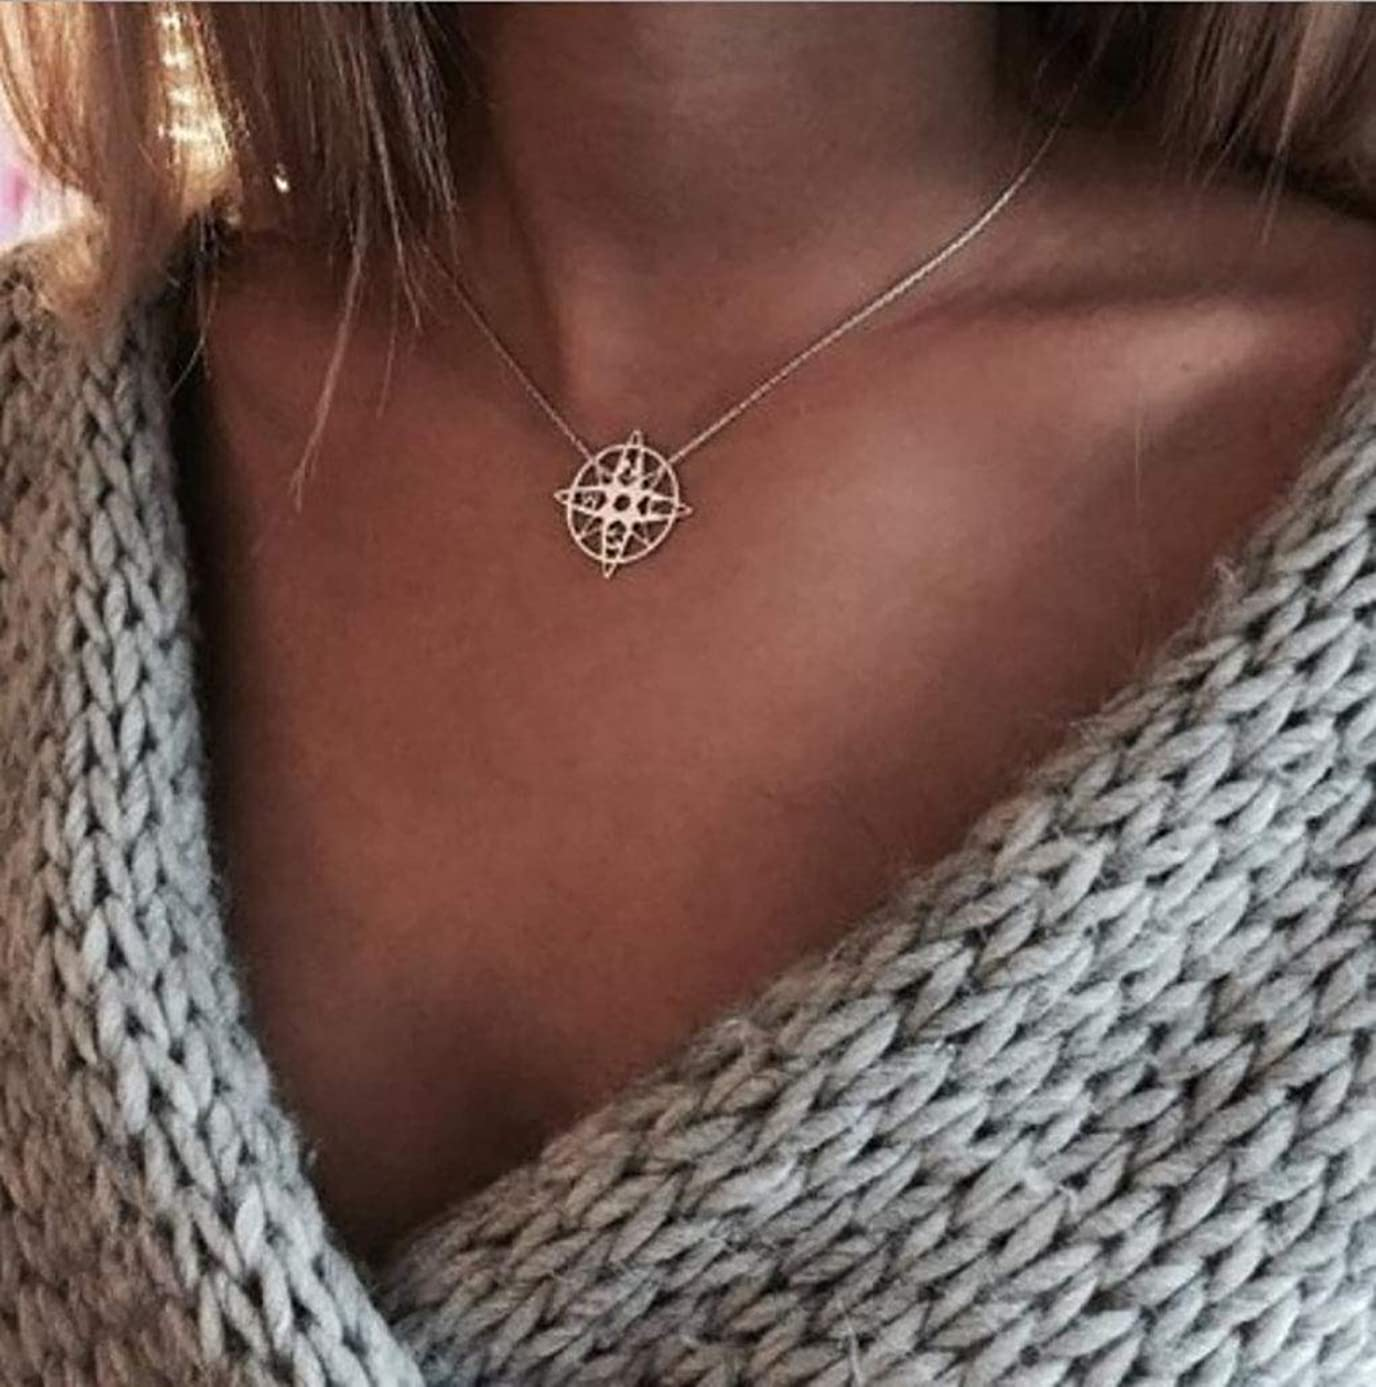 Leiothrix Boho Choker Geometry Star Necklace Pendant Silver Hoop Necklaces Chain Jewelry for Women Girls